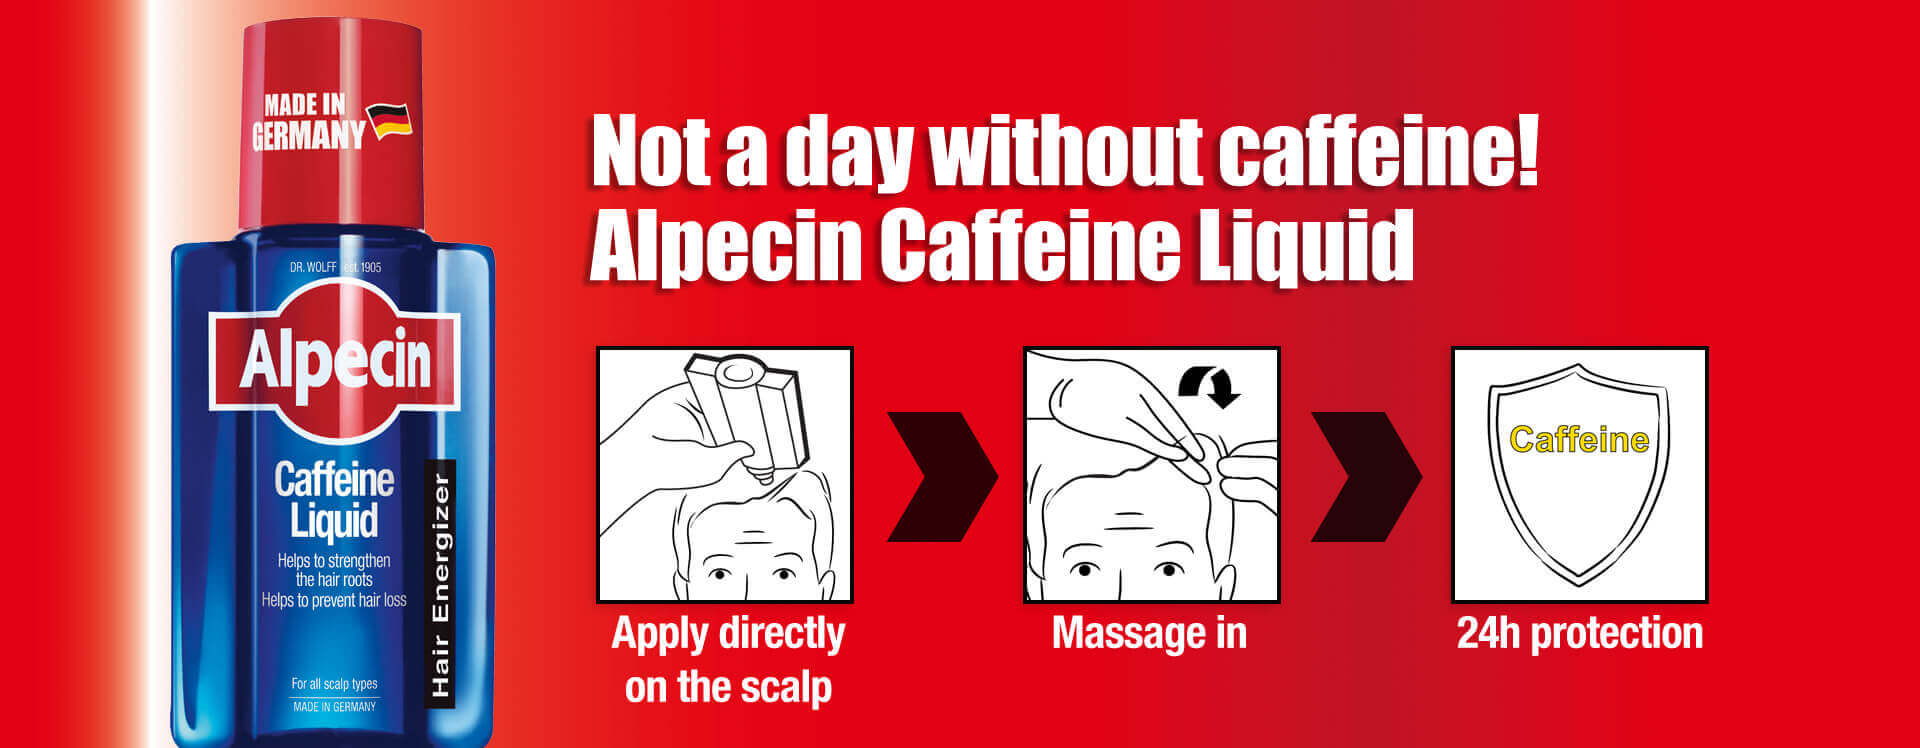 Not a day without caffeine!